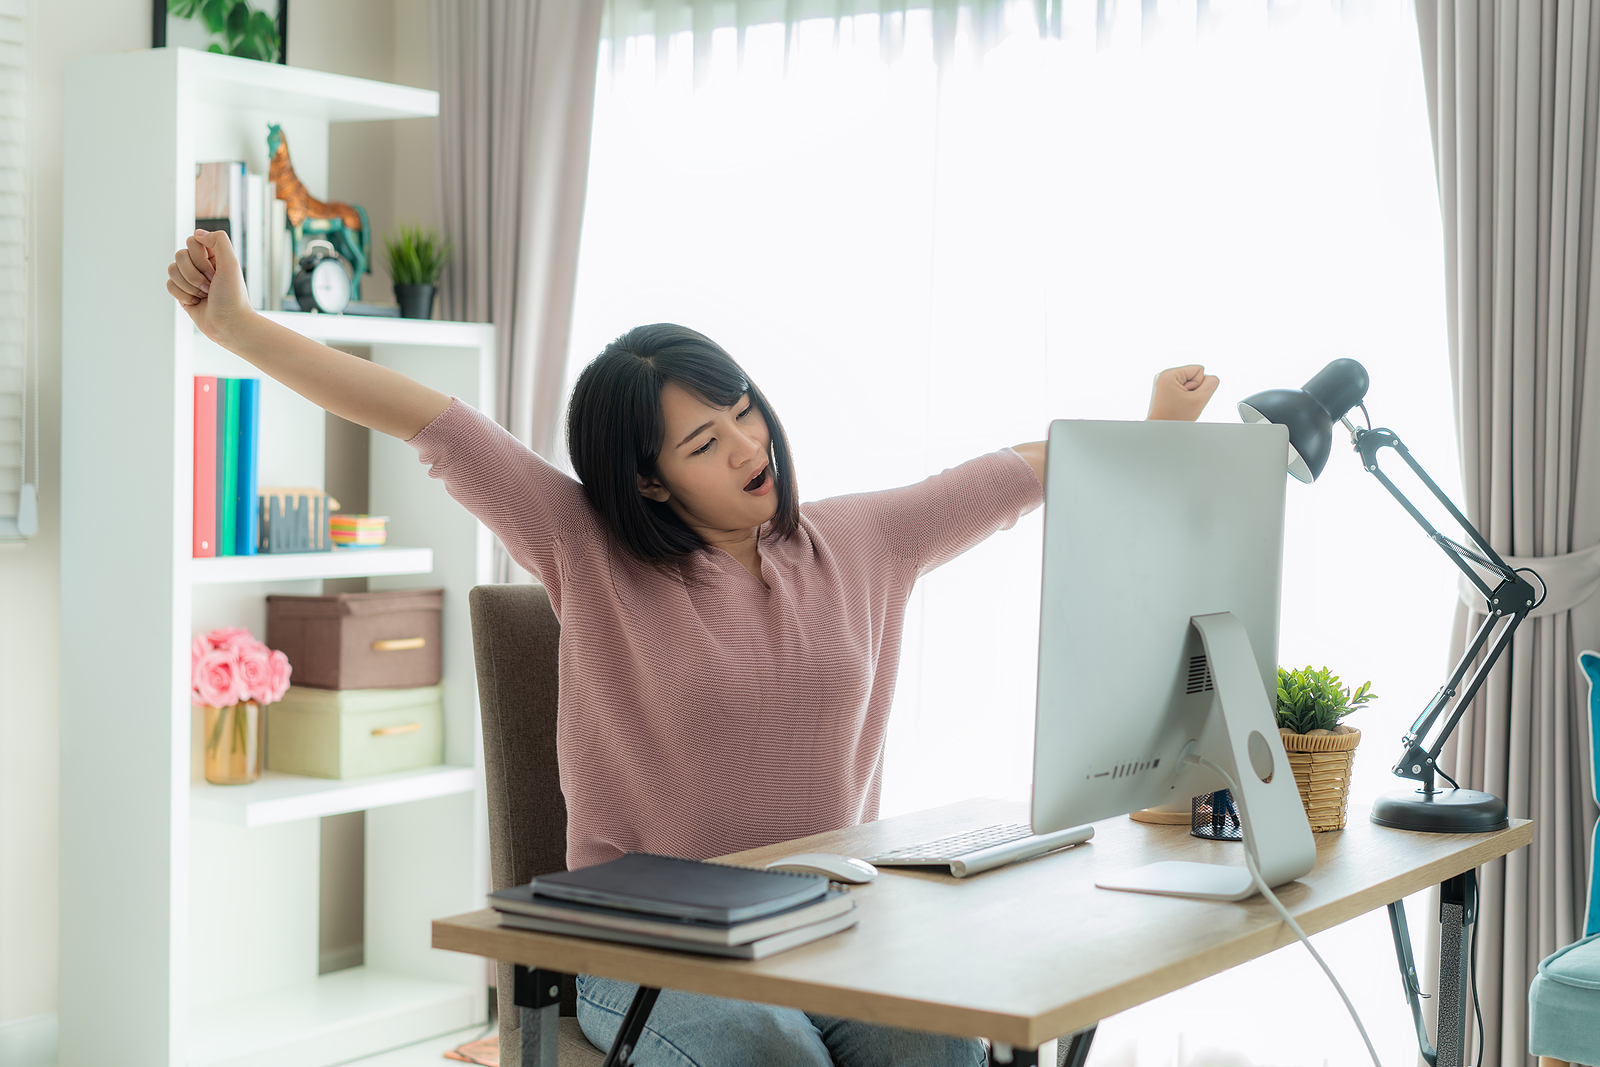 Asian business woman work from home and stretching her body because feel tired and sleepyafter working on computer, smart female working at home. Lifestyle woman relax after working at home concept.